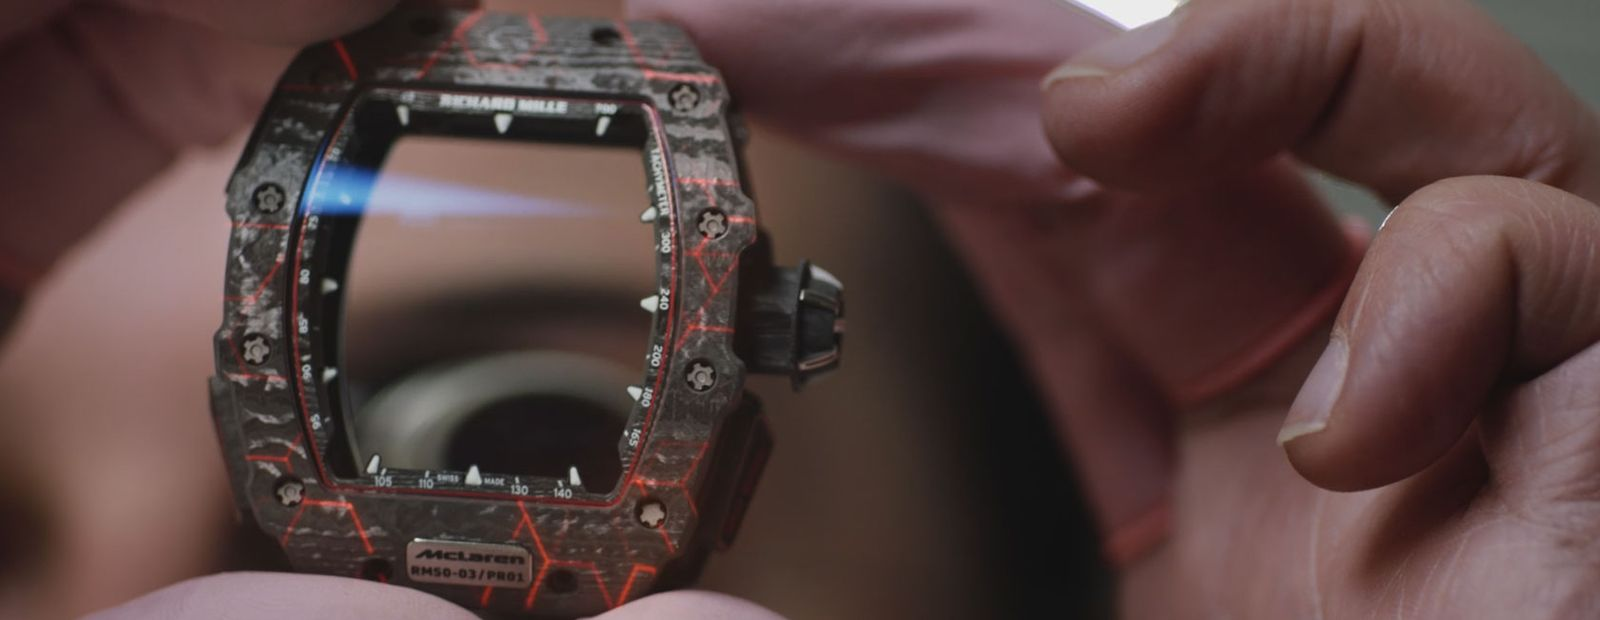 McLaren Racing - A racing machine on the wrist: the story of graphene